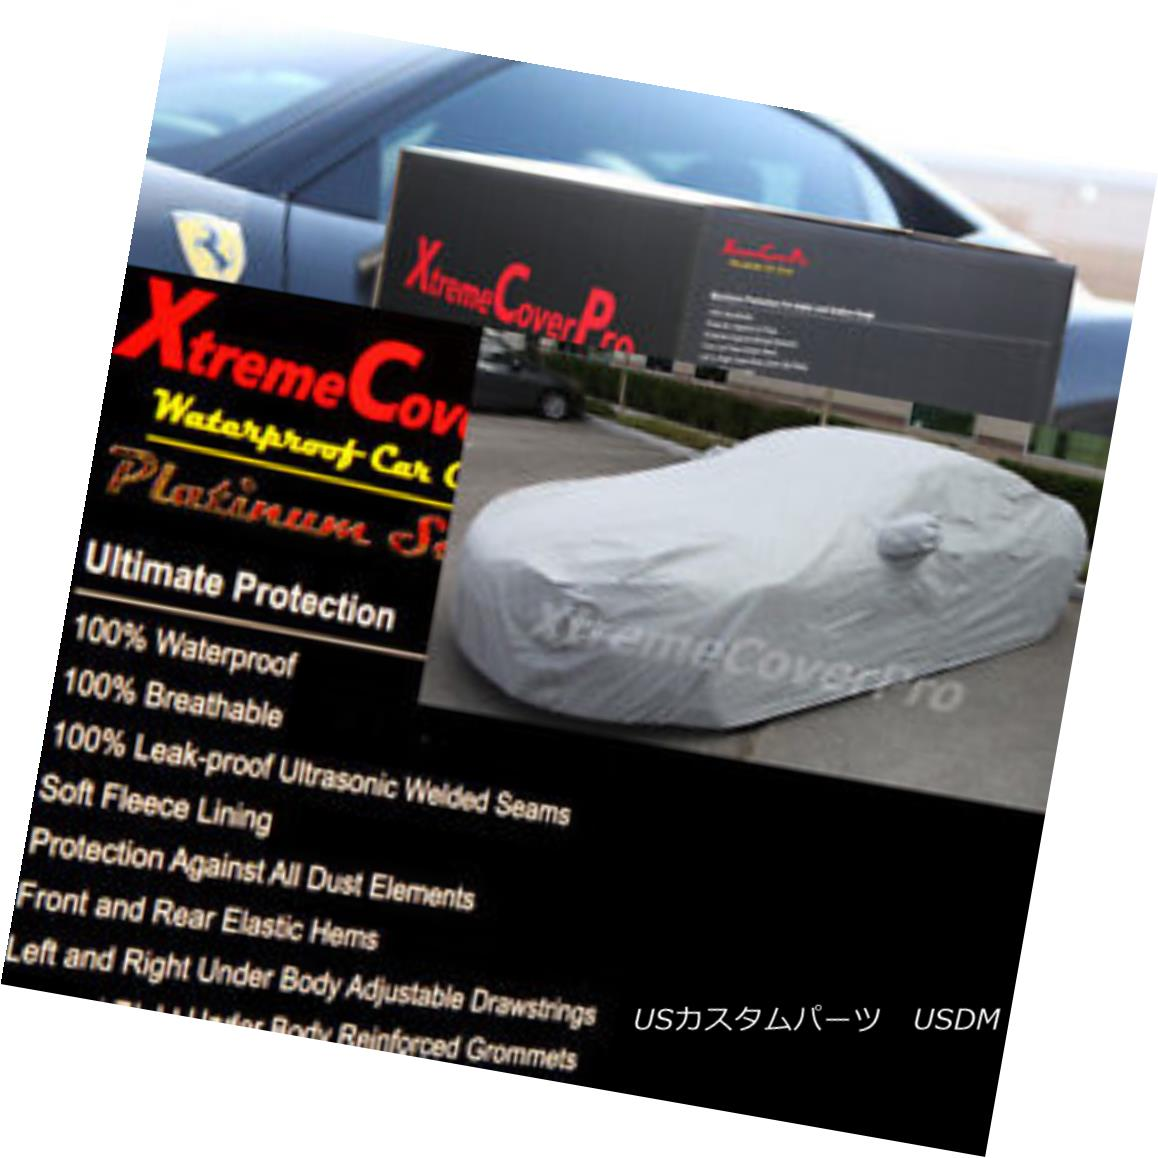 カーカバー 2015 FORD TAURUS Waterproof Car Cover w/Mirror Pockets - Gray 2015 FORD TAURミラーポケット付き防水カーカバー - グレー